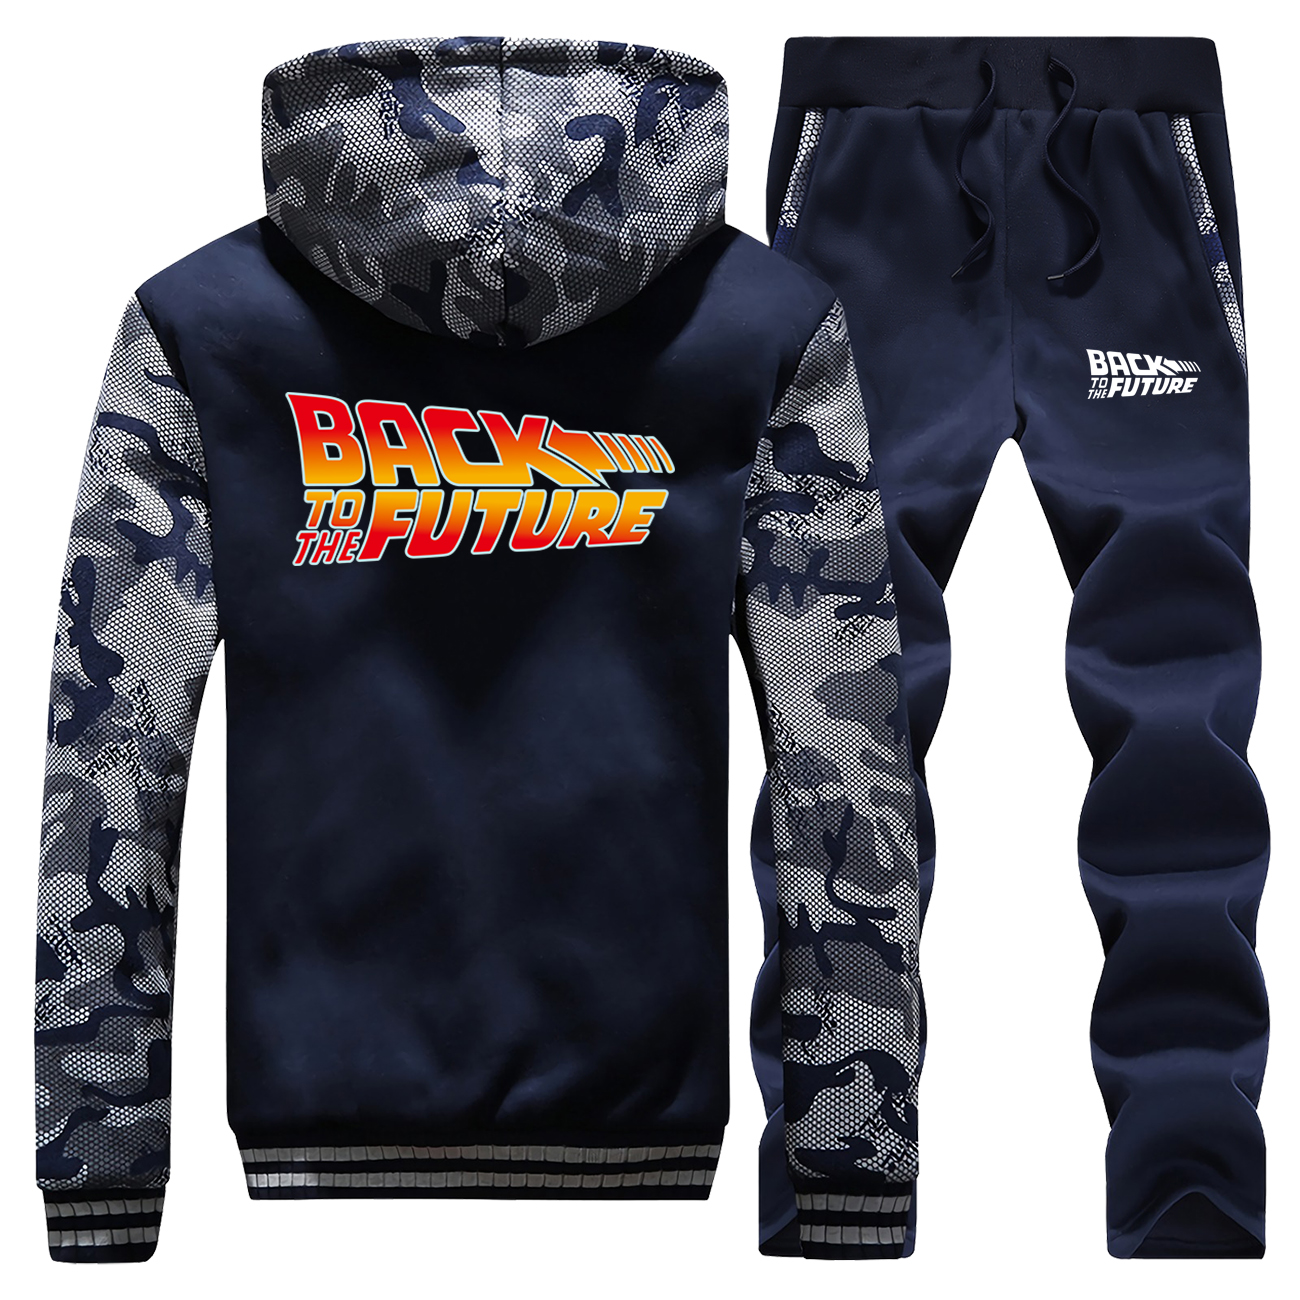 Back To The Future Printed Jacket+Pant 2PC Sets Men Sweatshirt Camouflage Hoodies Warm Tracksuit Mens Winter Sport Suit Outdoor